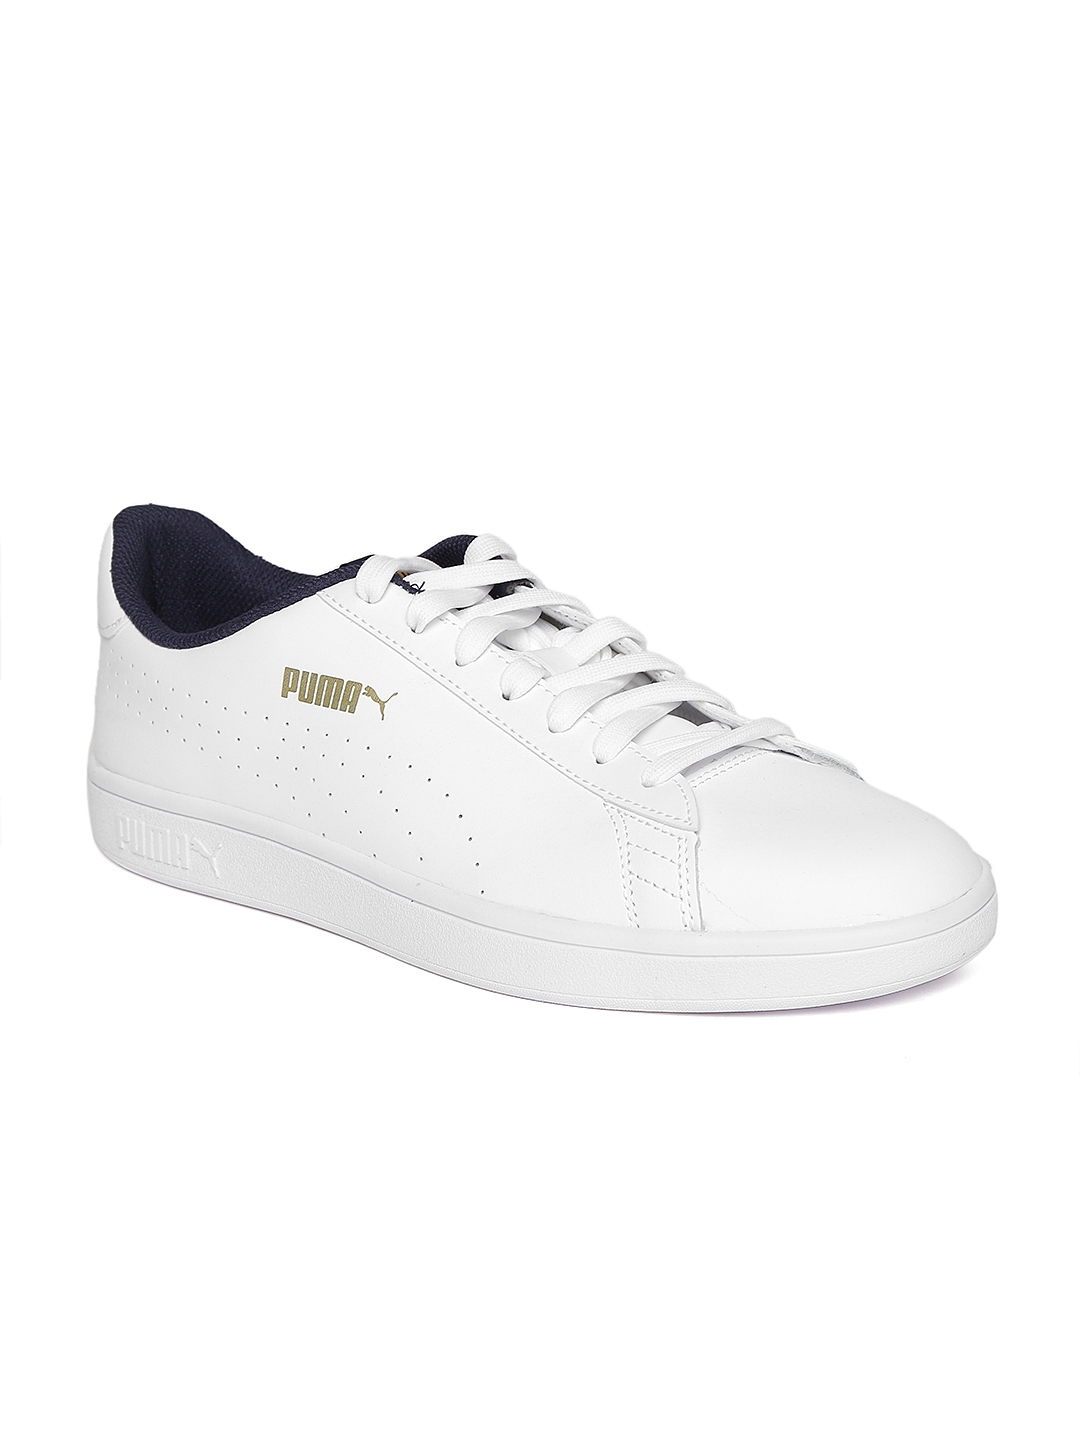 Buy Puma Men White Smash V2 L Perforated Leather Sneakers - Casual ... 491b4cb05